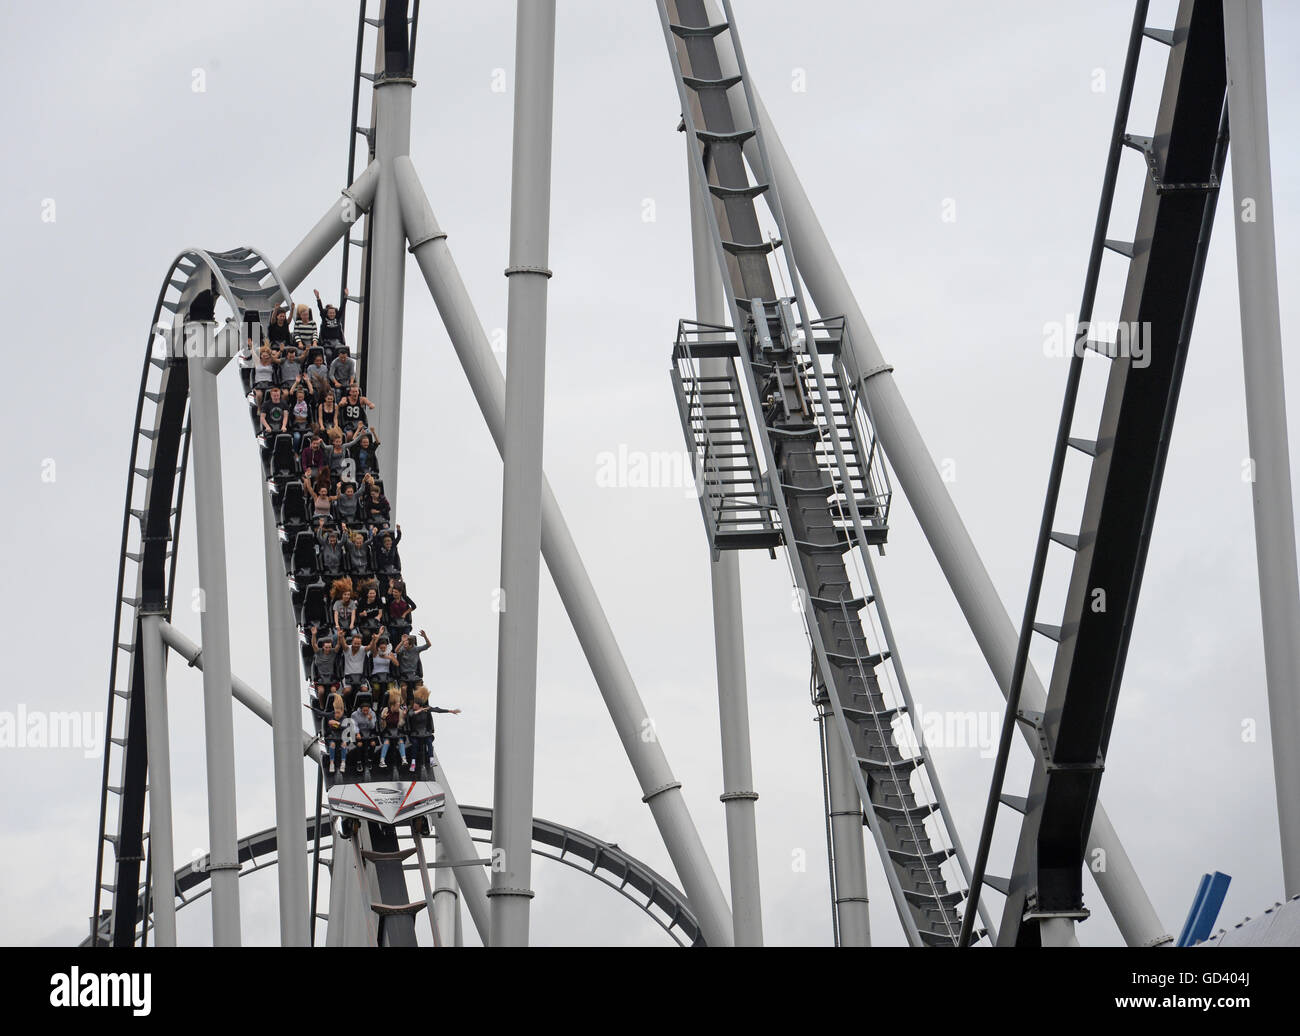 Rust, Germany. 12th July, 2016. The rollercoaster 'Silverstar' at the Europa-Park in Rust, Germany, 12 July - Stock Image